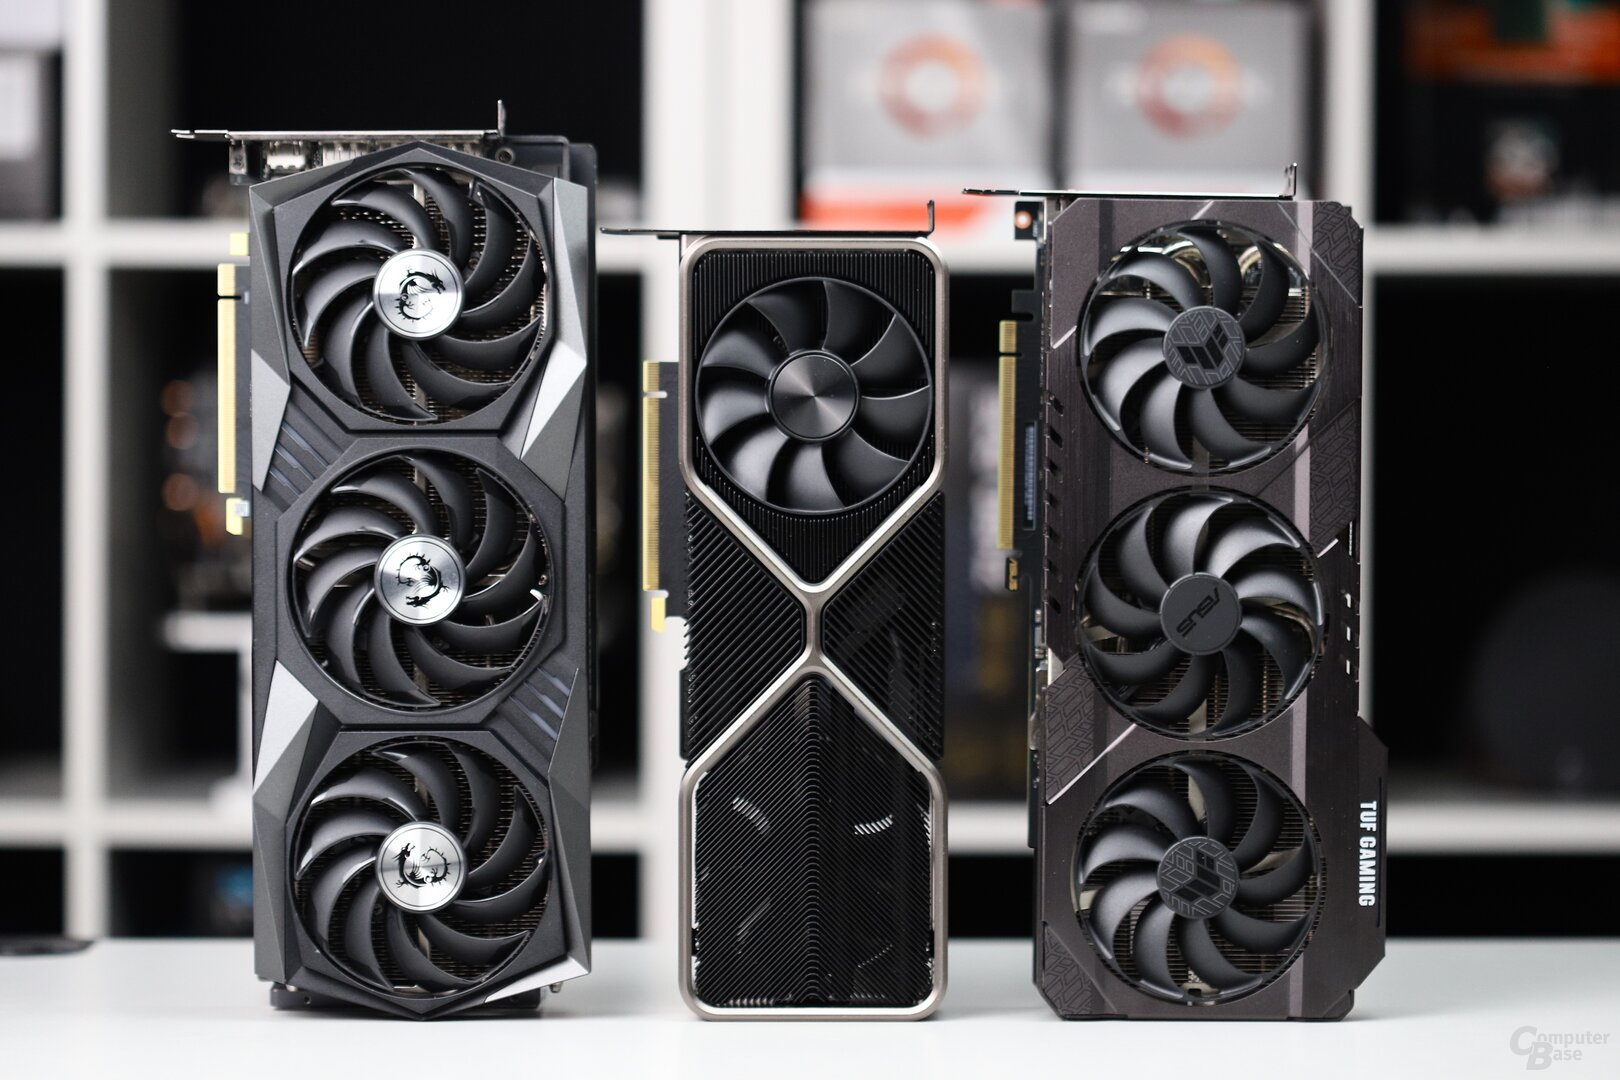 Asus TUF, MSI Gaming X und Nvidia Founders Edition